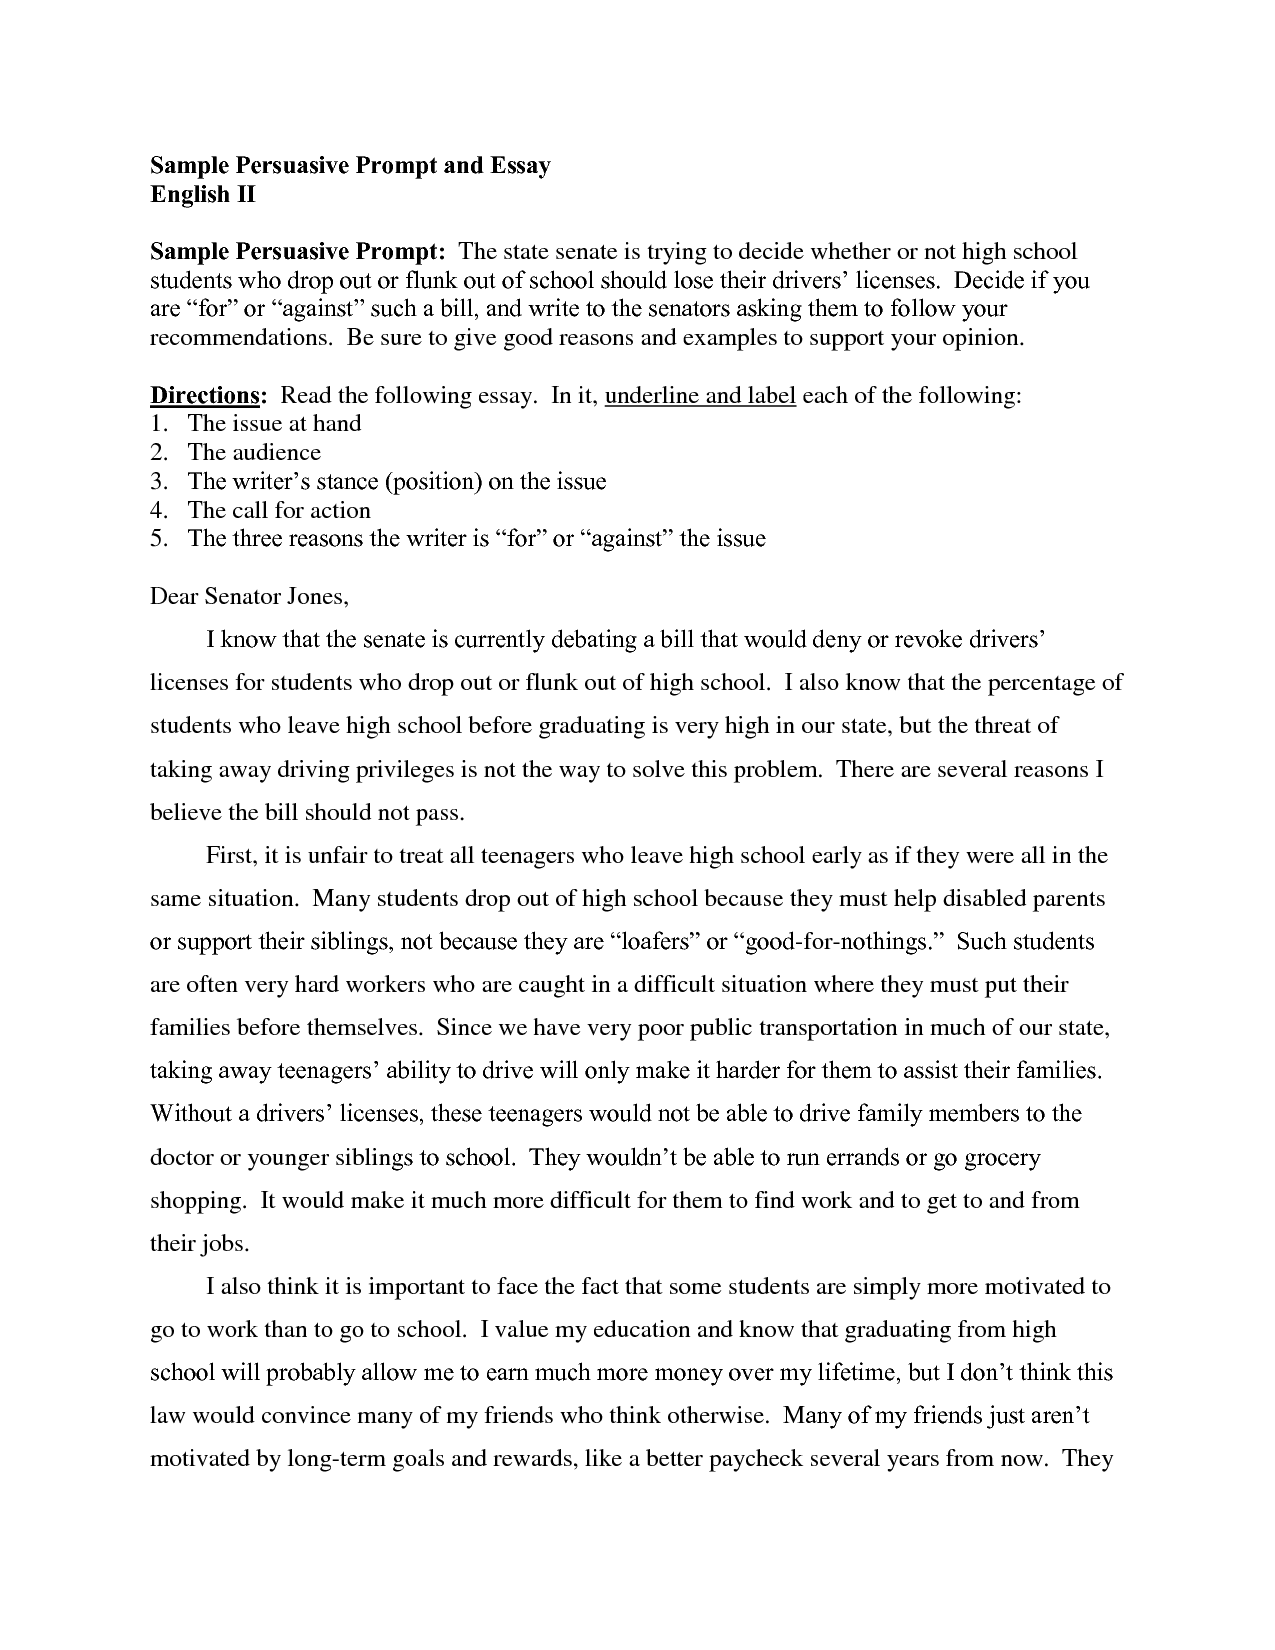 Essay My Family English  Thesis For A Narrative Essay also Essay On High School Dropouts  Research Paper Persuassive Essay Persuasive Sample High  High School And College Essay